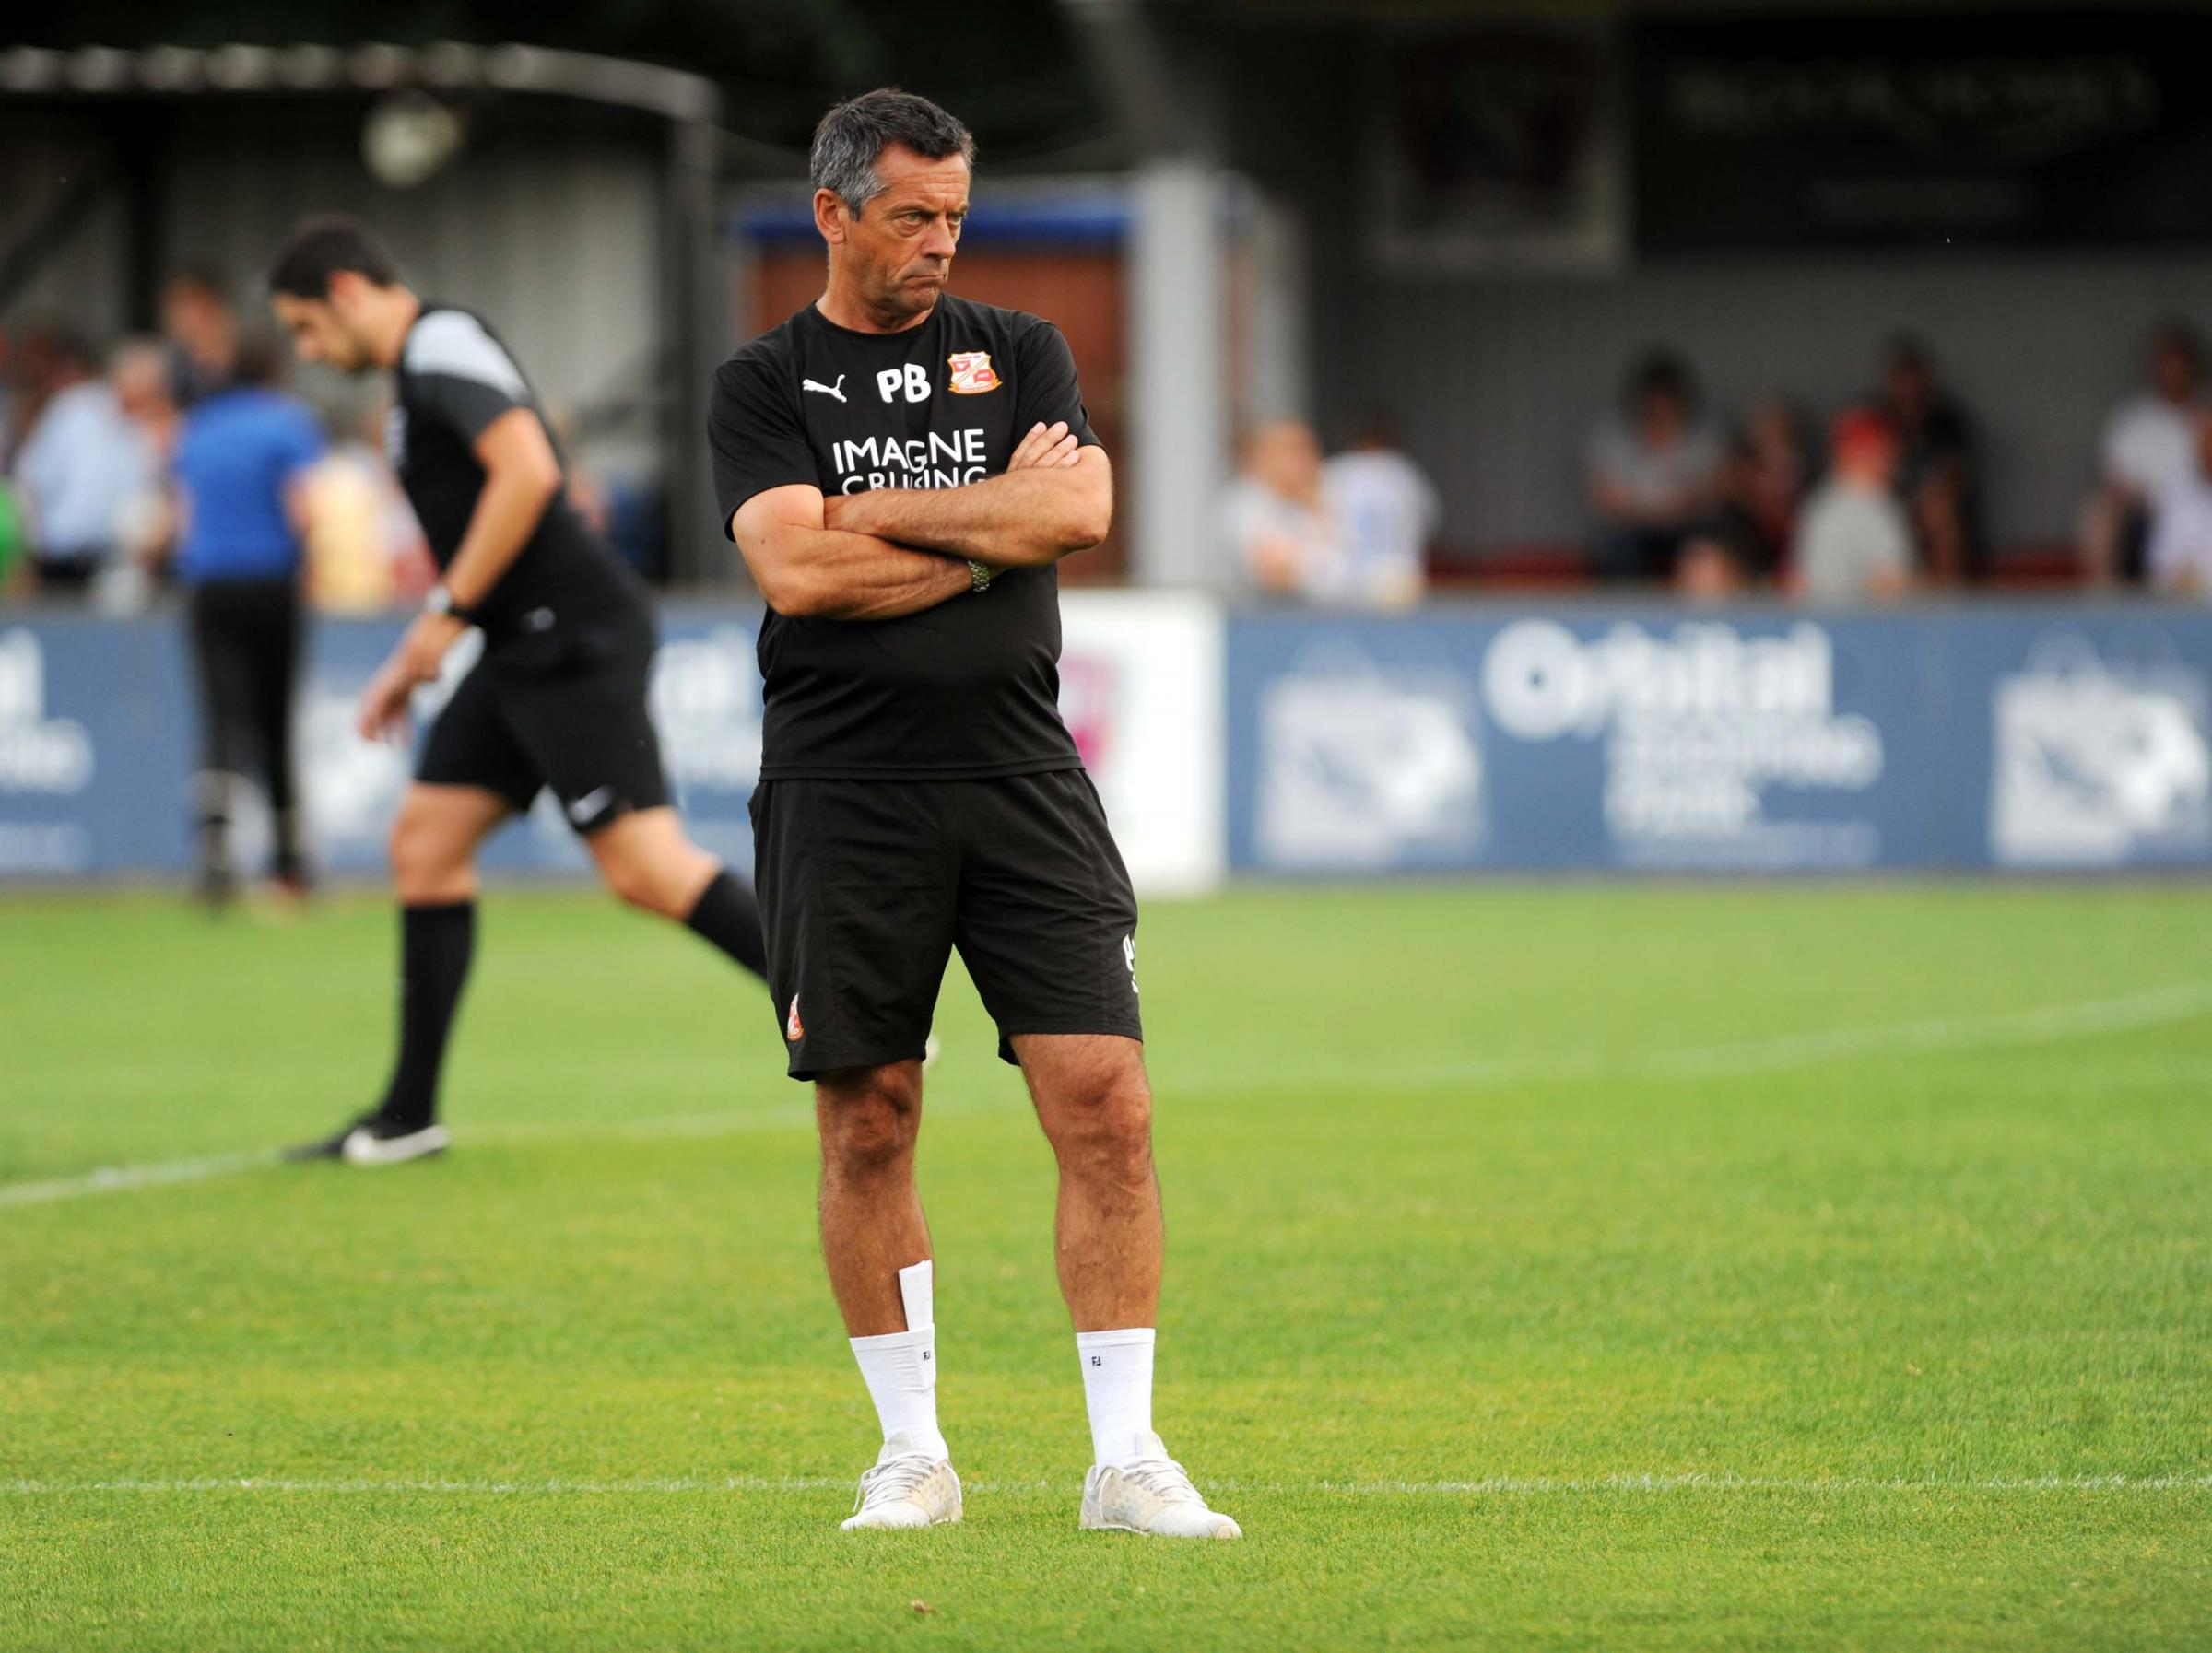 VIDEO: Phil Brown on Swindon Town 3 Tranmere Rovers 2